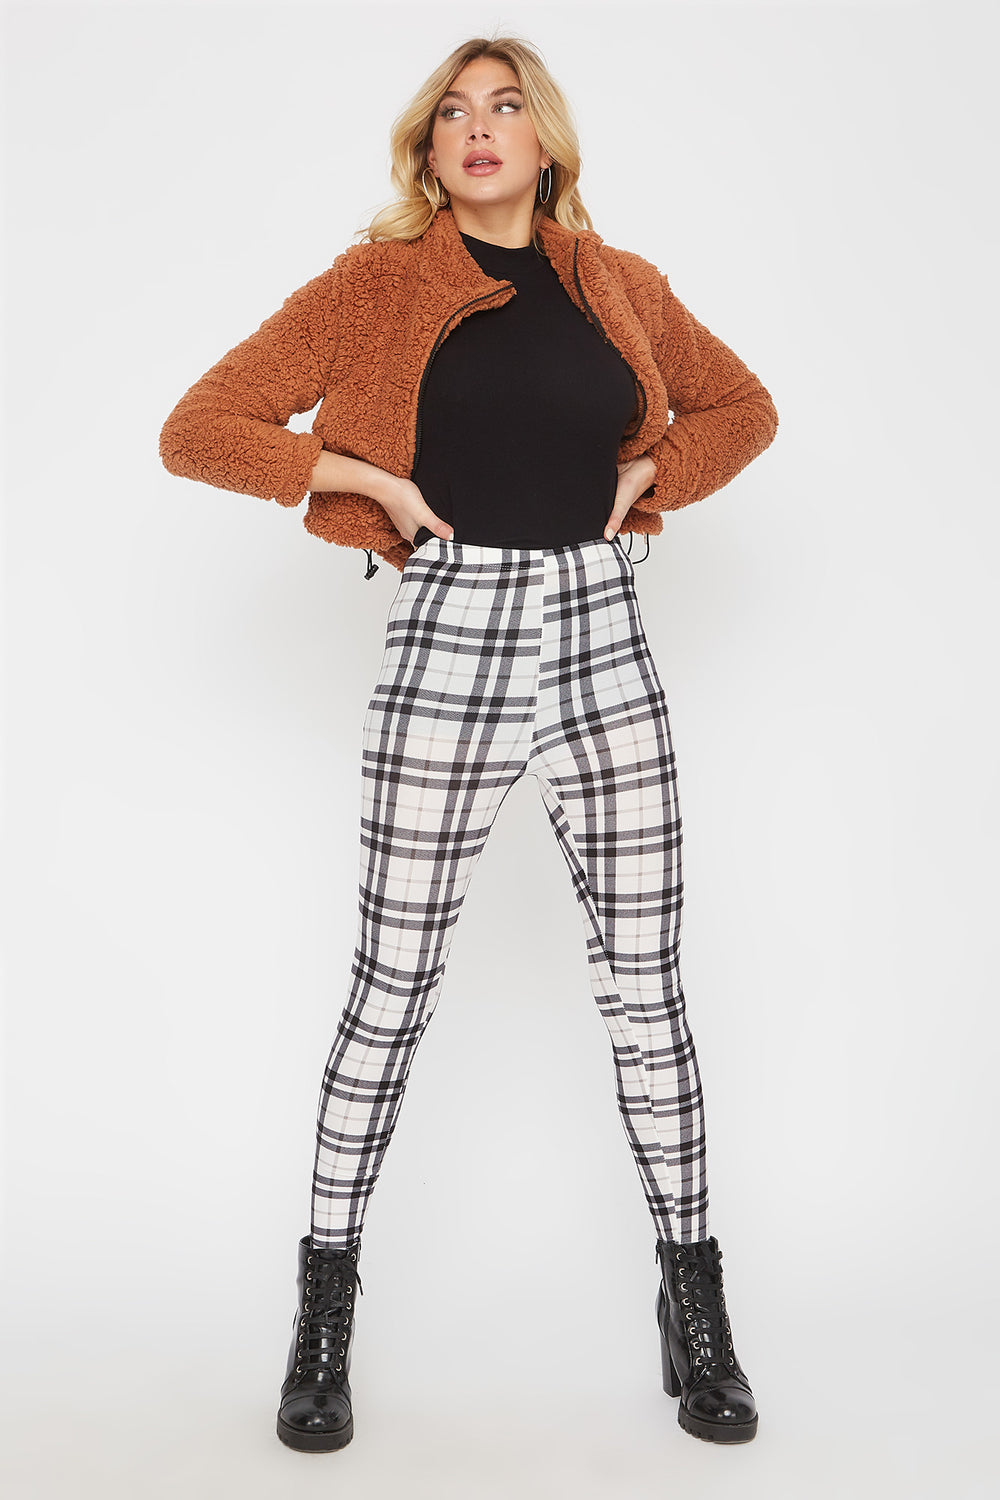 Plaid Soft Basic Legging Black with White